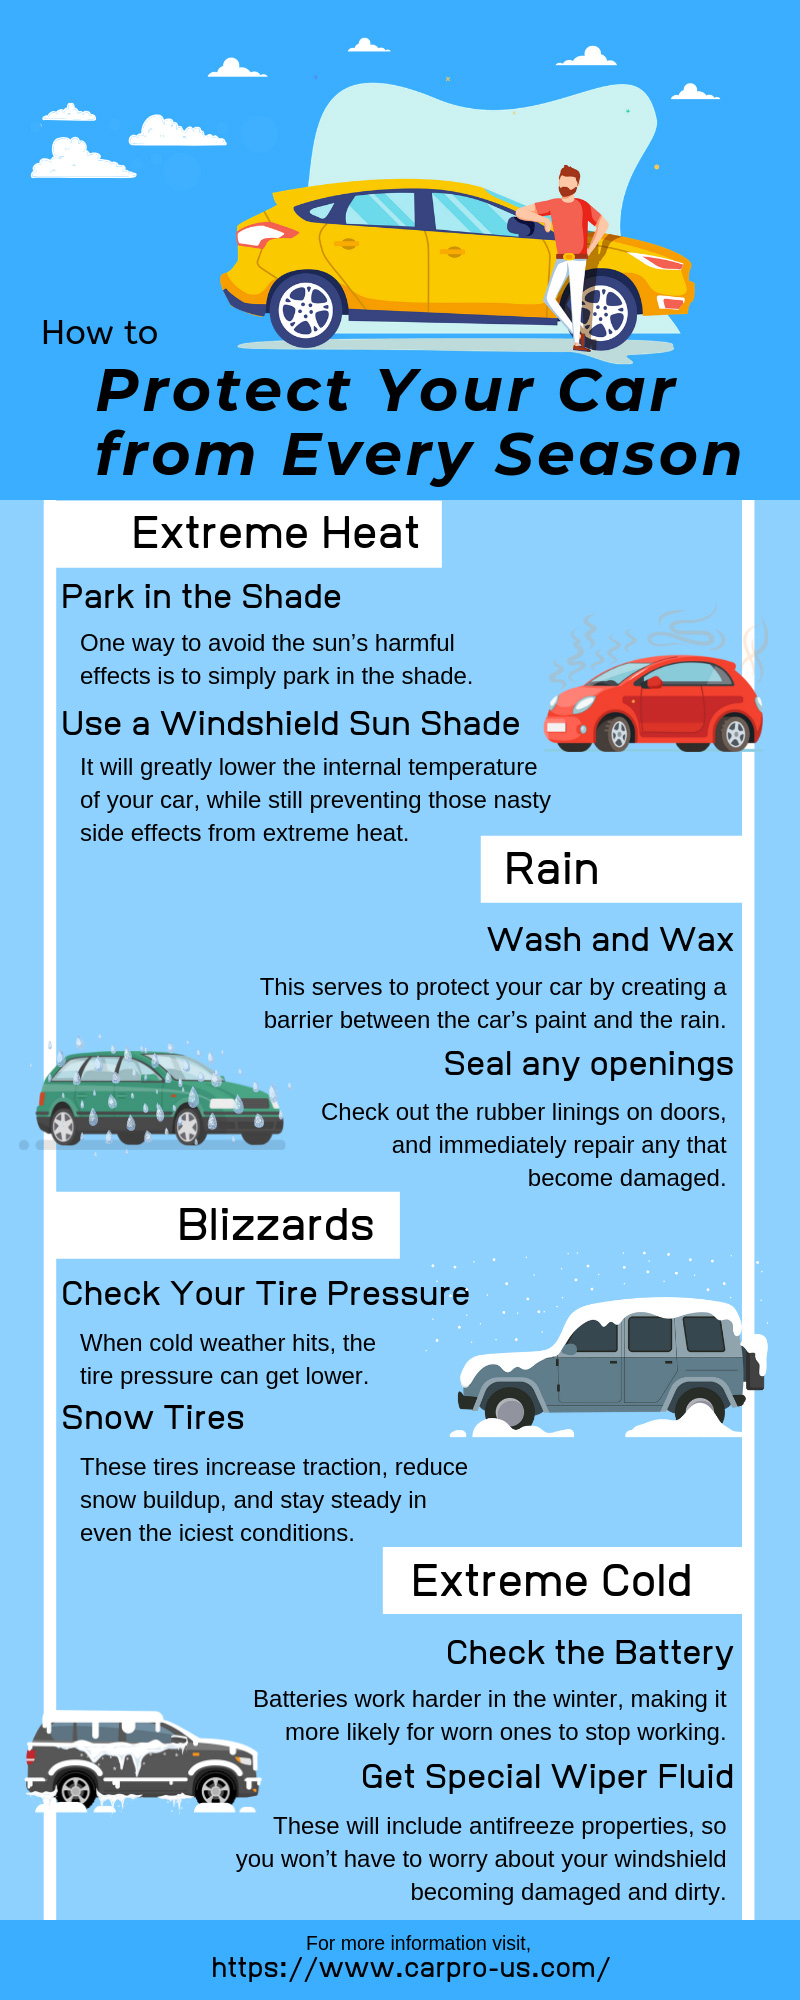 Protect Your Car from Weather